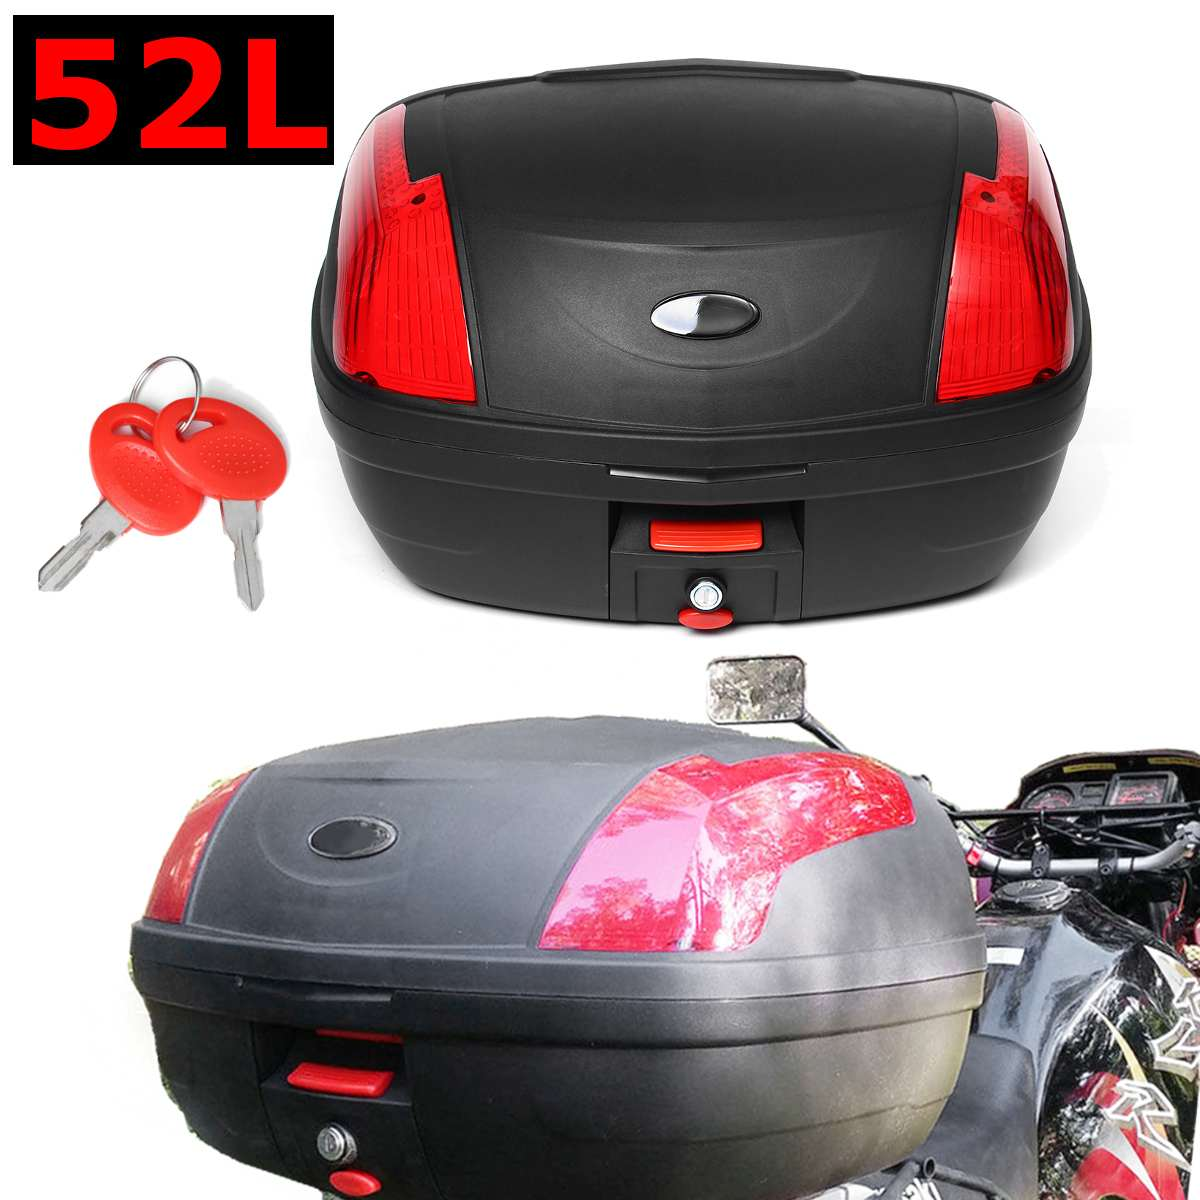 52L Secure Latch Black Motorcycle Trunk With Lock Scooter Top box Durable Rear Storage Luggage Topbox Case 55x42x32cm New|Motorcycle Trunk| |  - title=